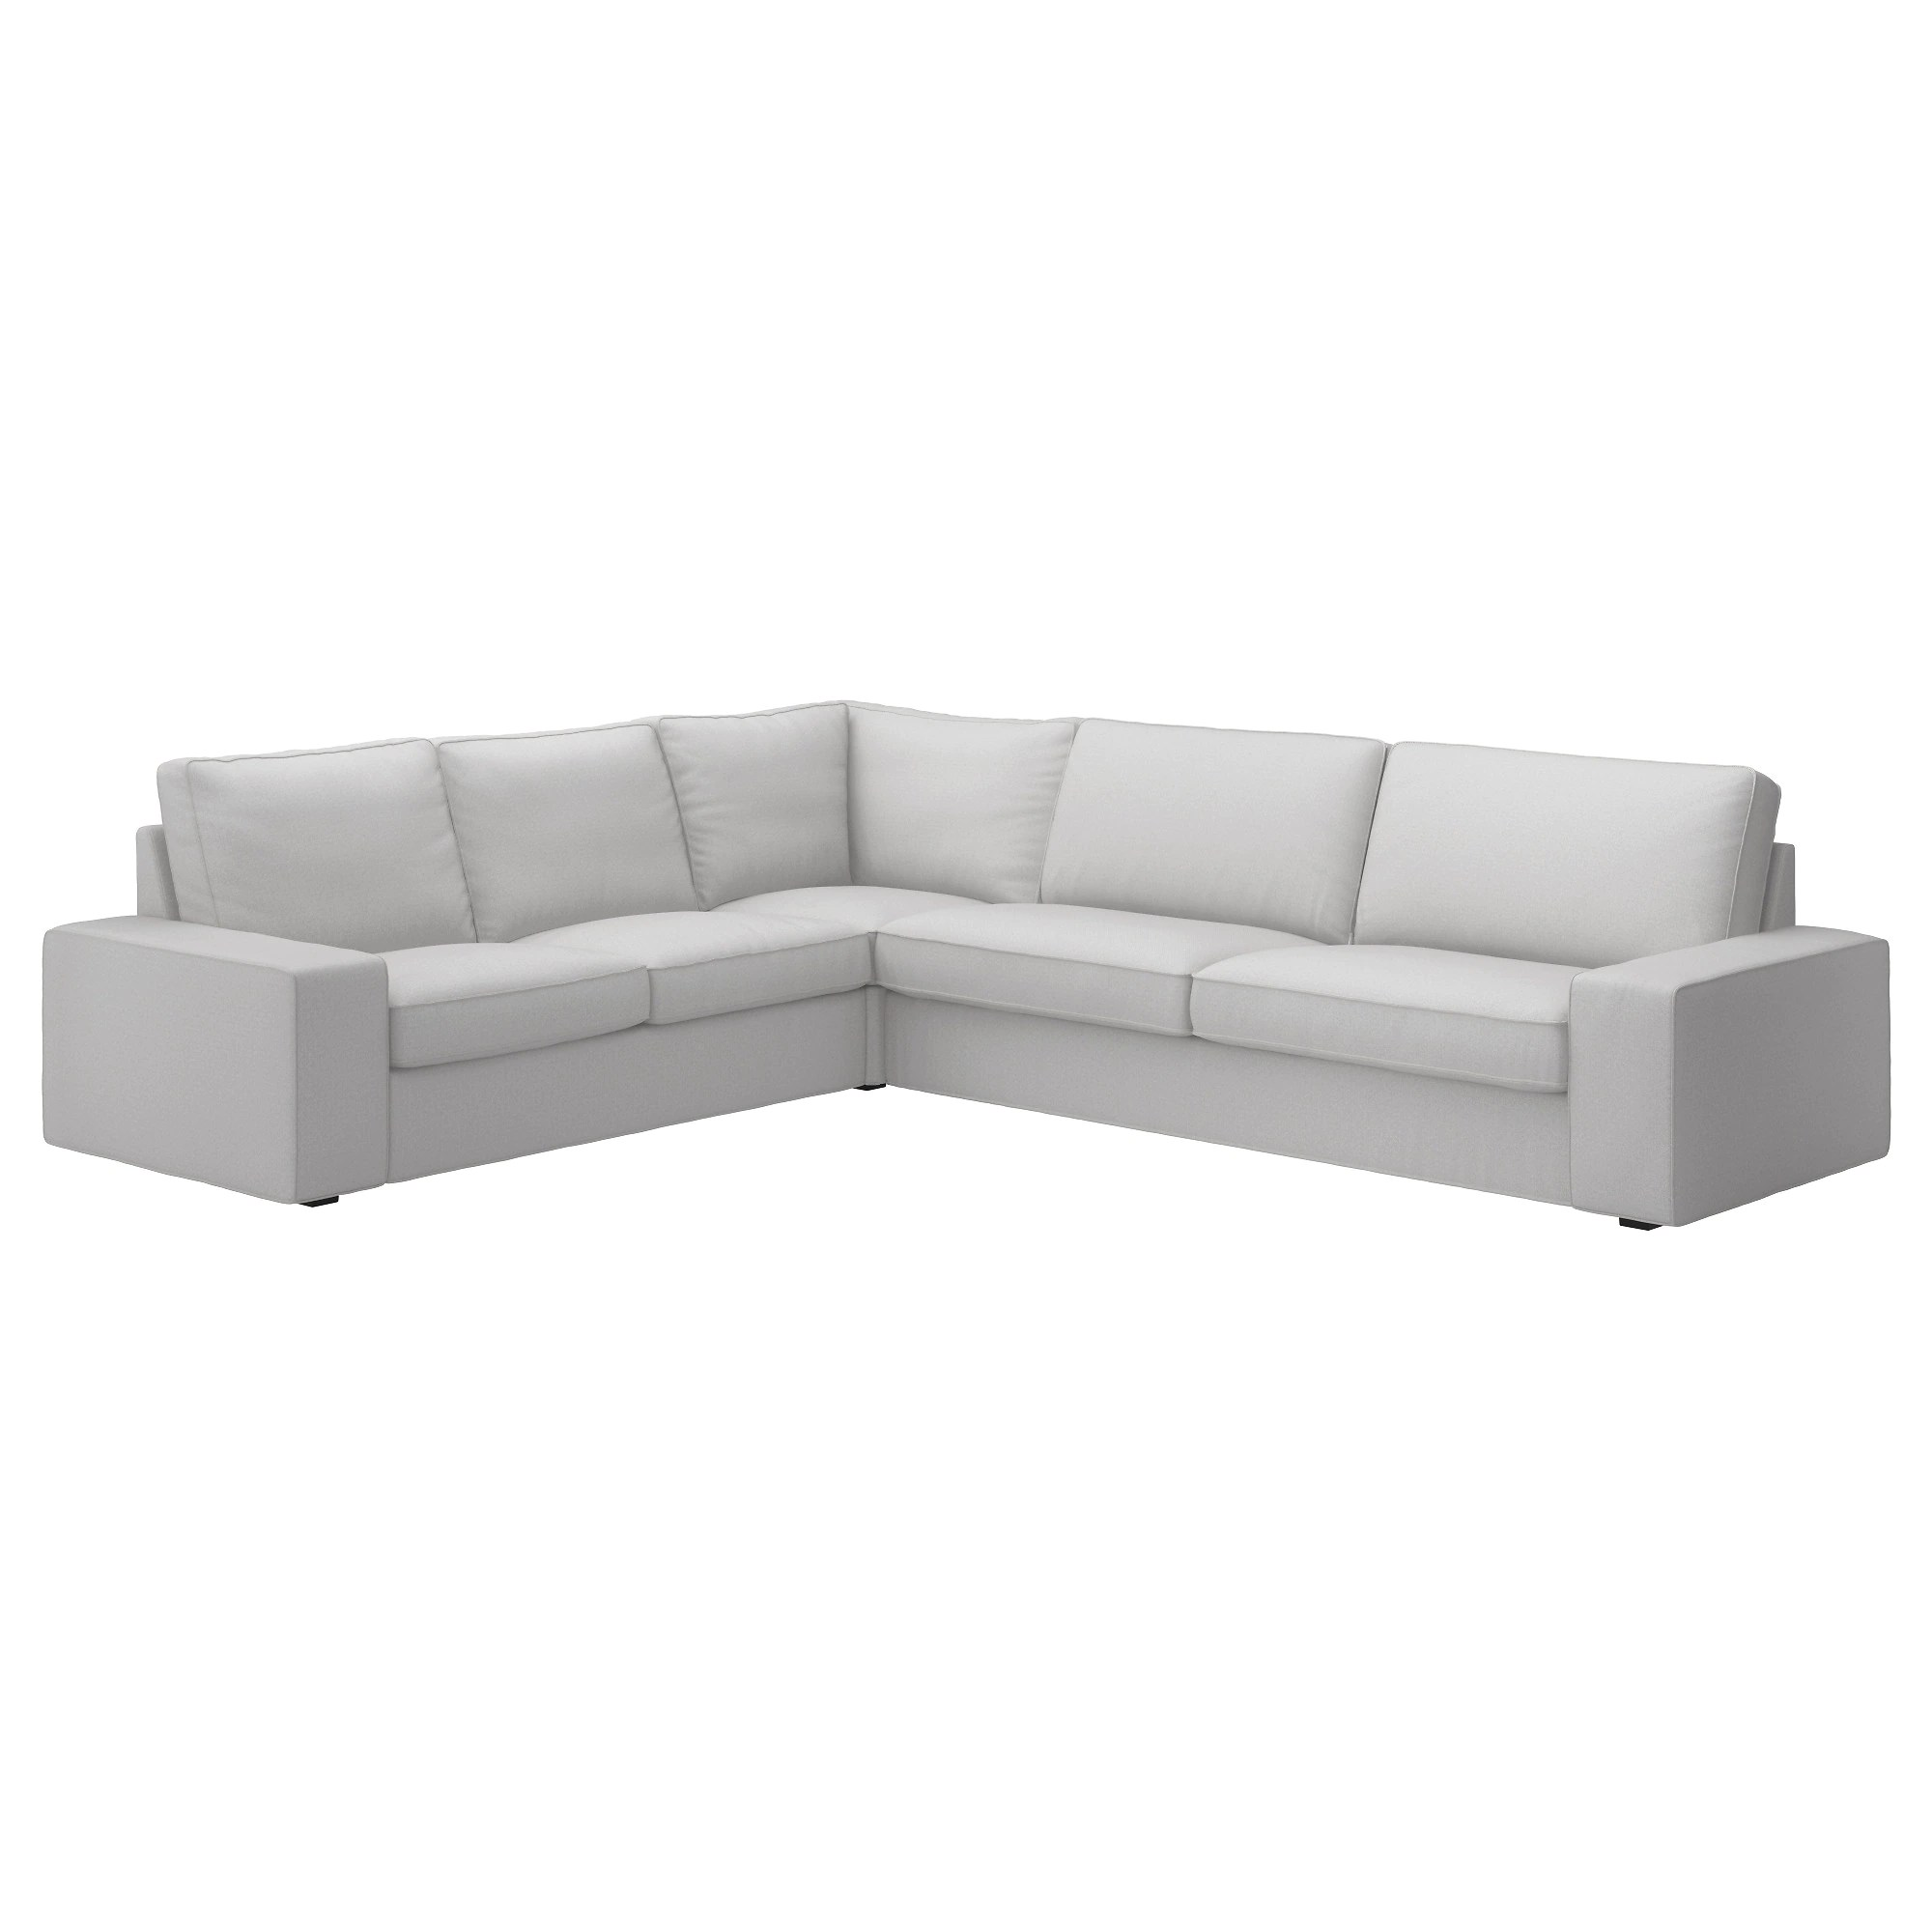 Kivik Sofa Pdf Kivik Sectional 5 Seat Corner Orrsta Light Gray